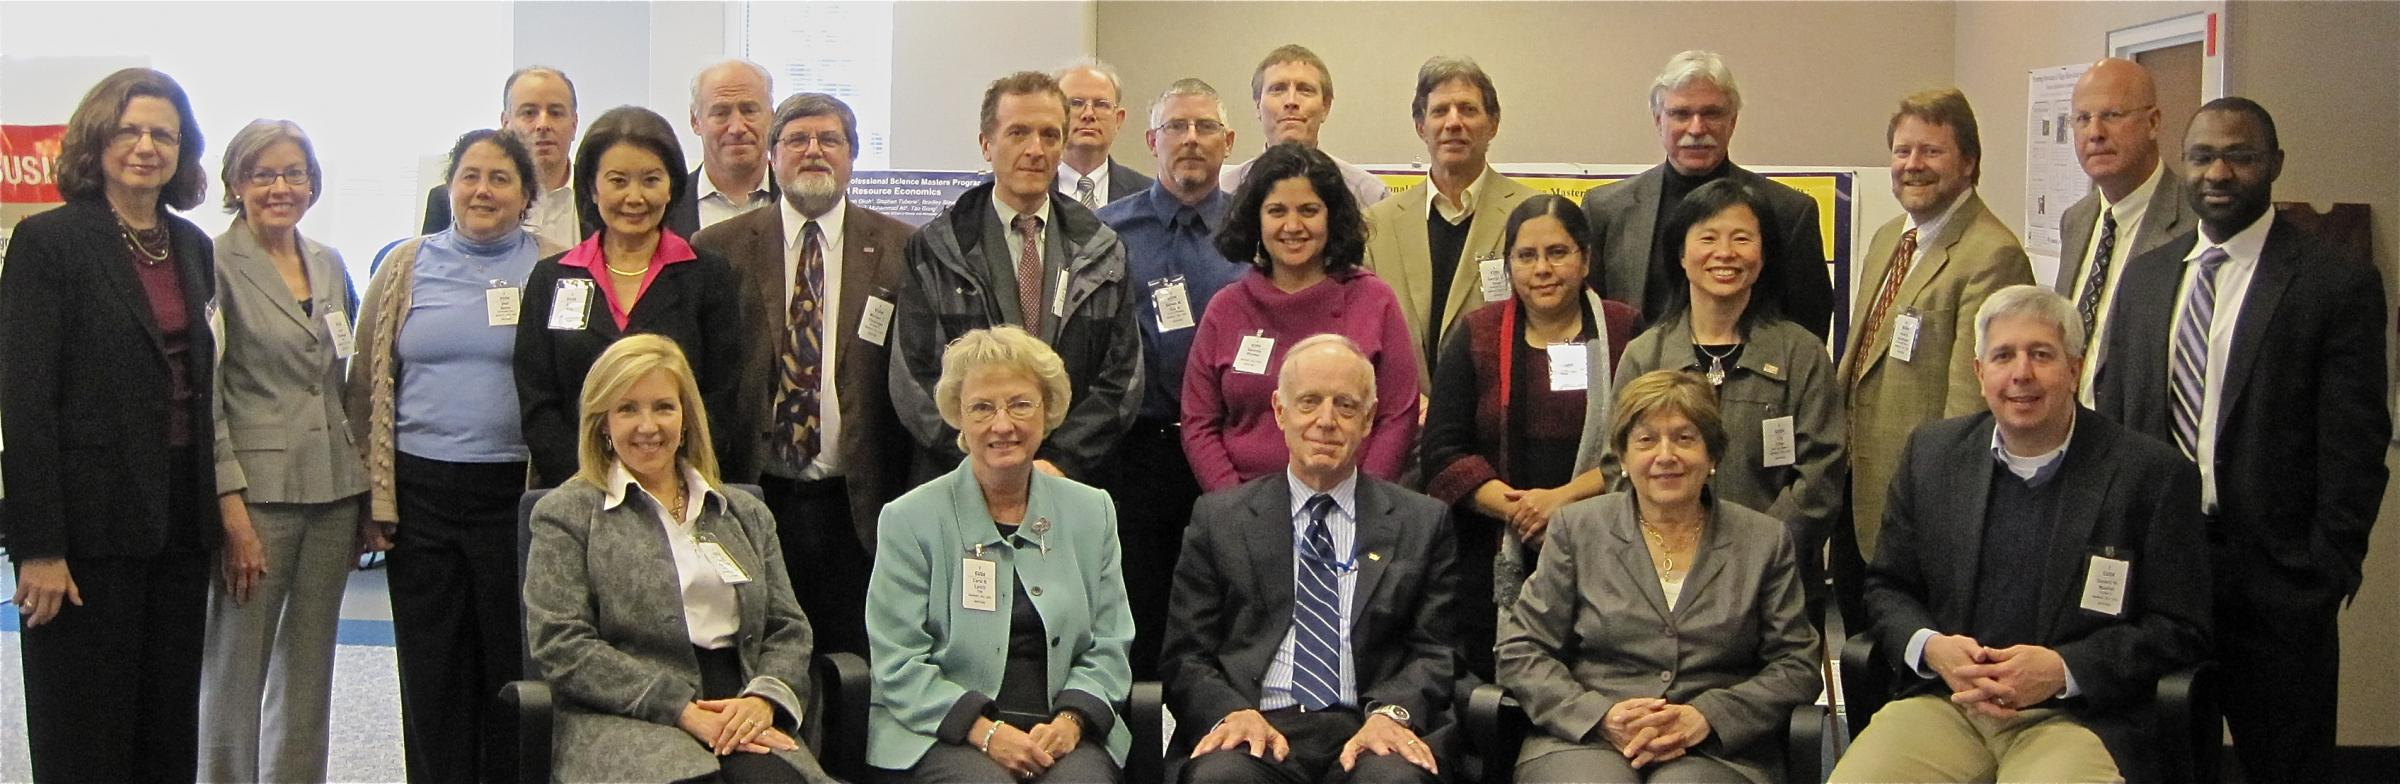 Picture of National Science Foundation SMP Directors Meeting in 2011